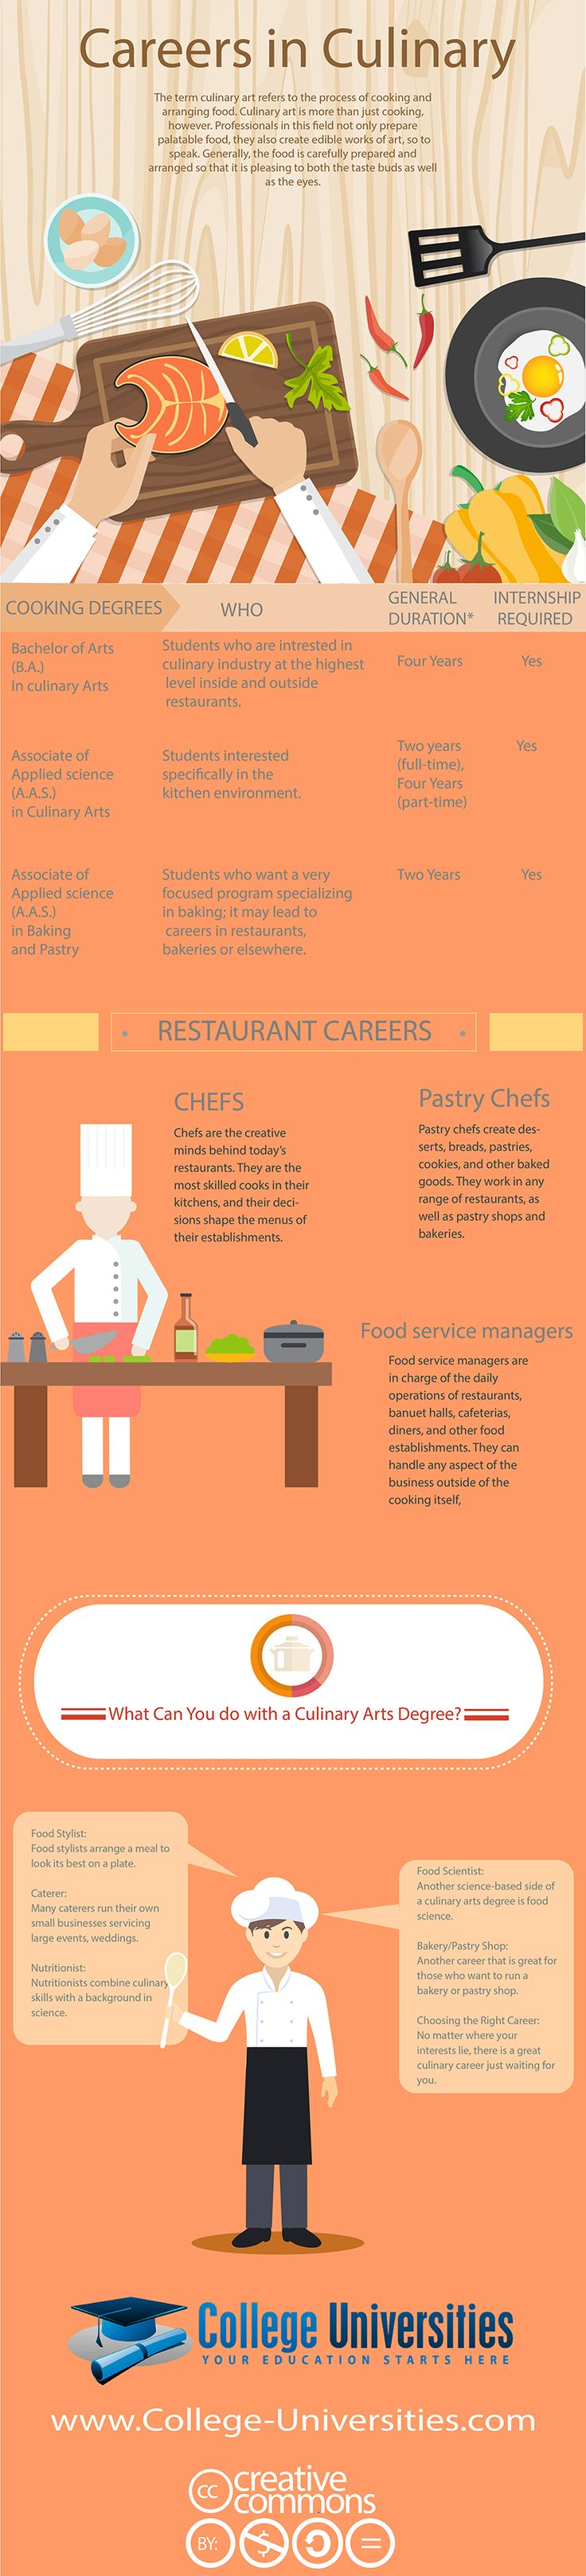 Top Careers for Your Culinary Arts Education Infographic - http://elearninginfographics.com/top-careers-for-your-culinary-arts-education/